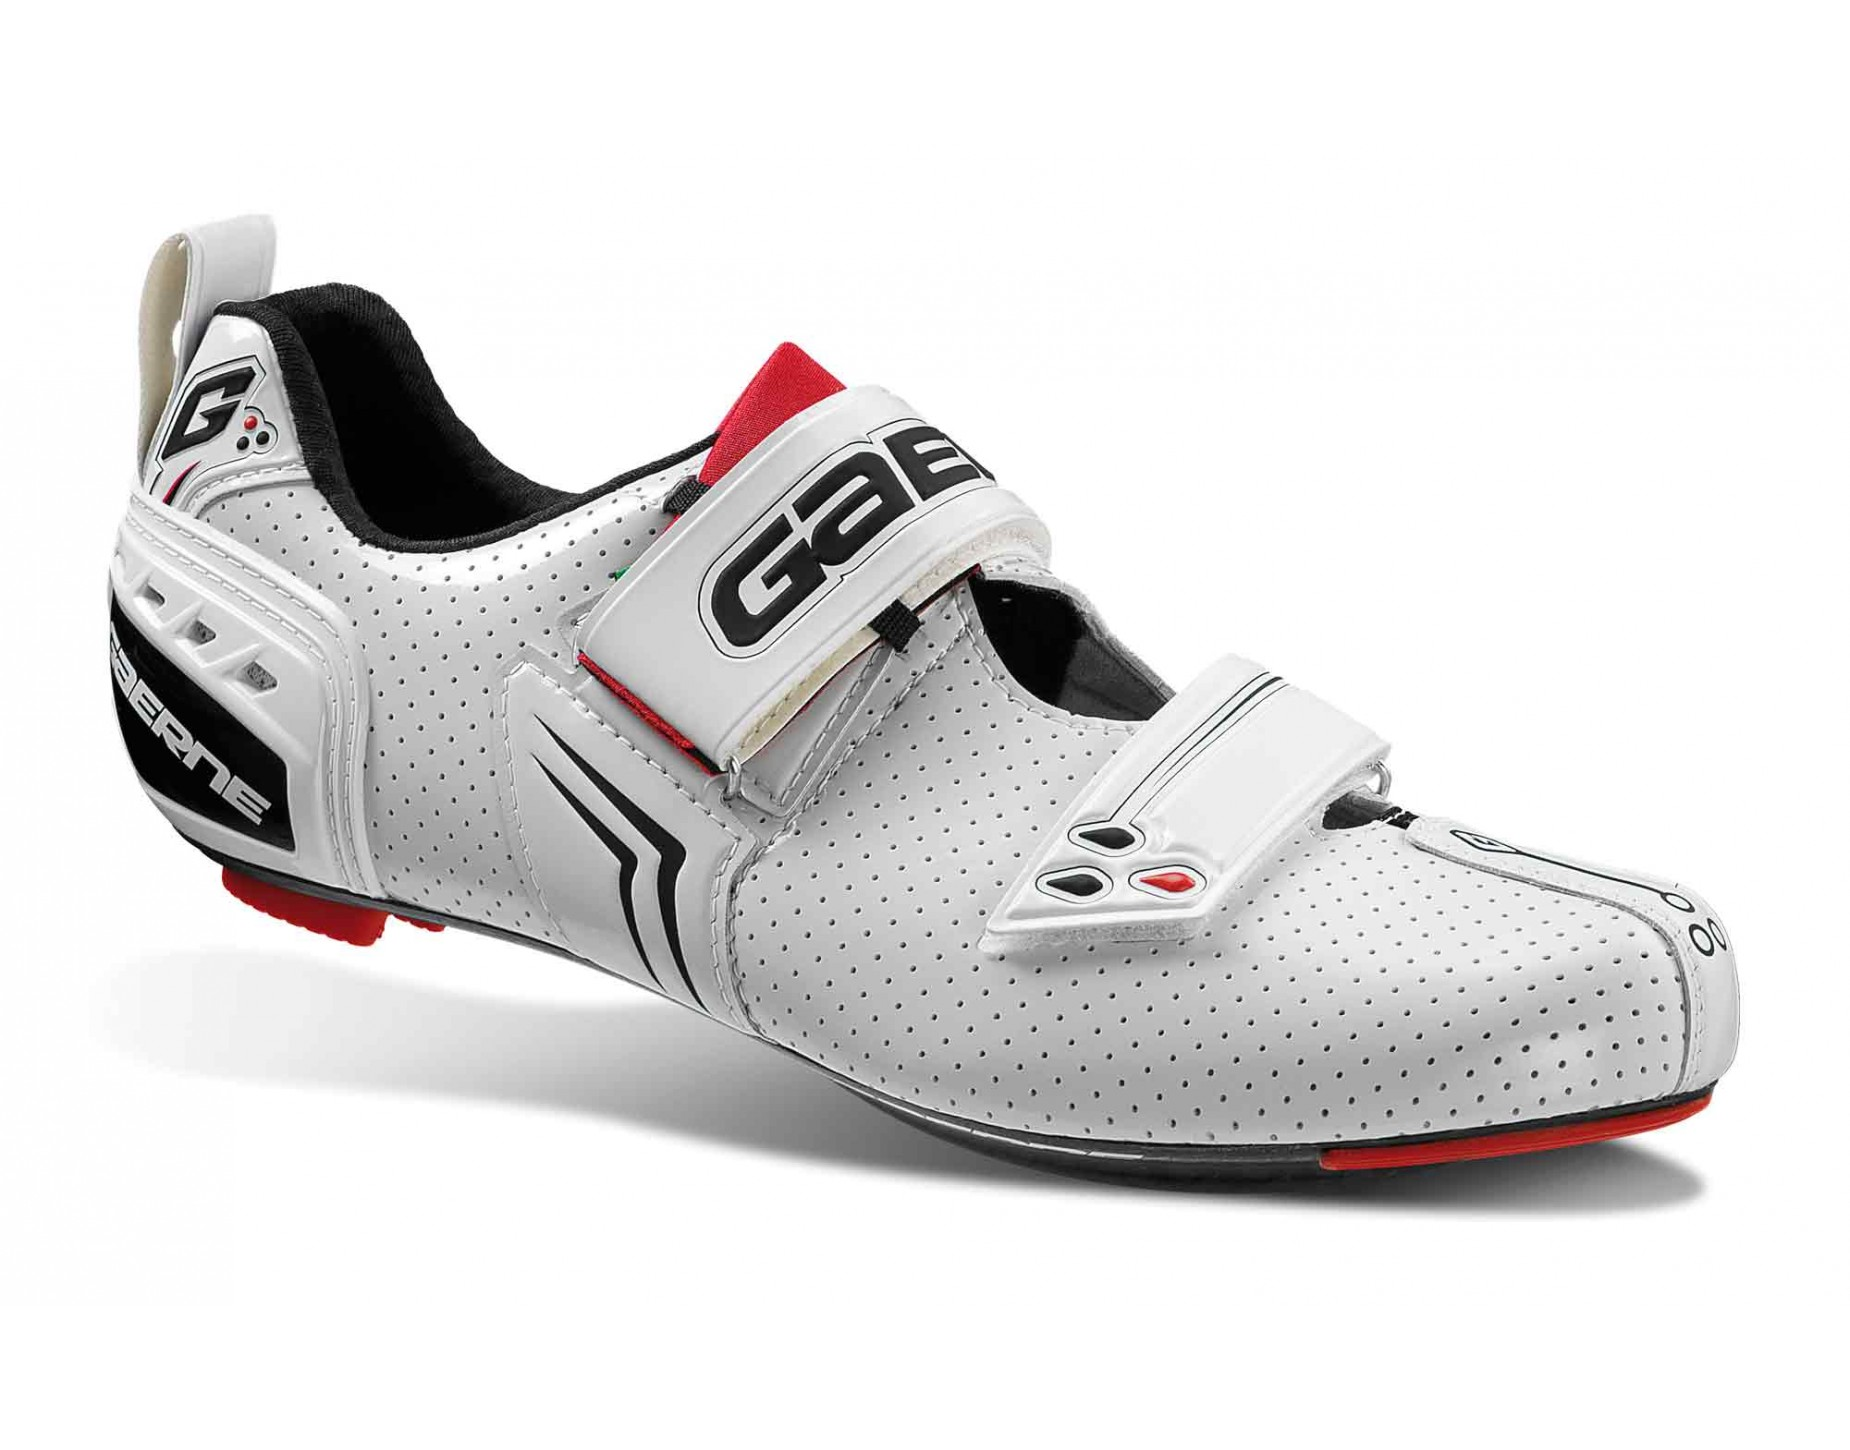 Specialized S-Works Trivent Triathlon Shoe, showing boa-closure